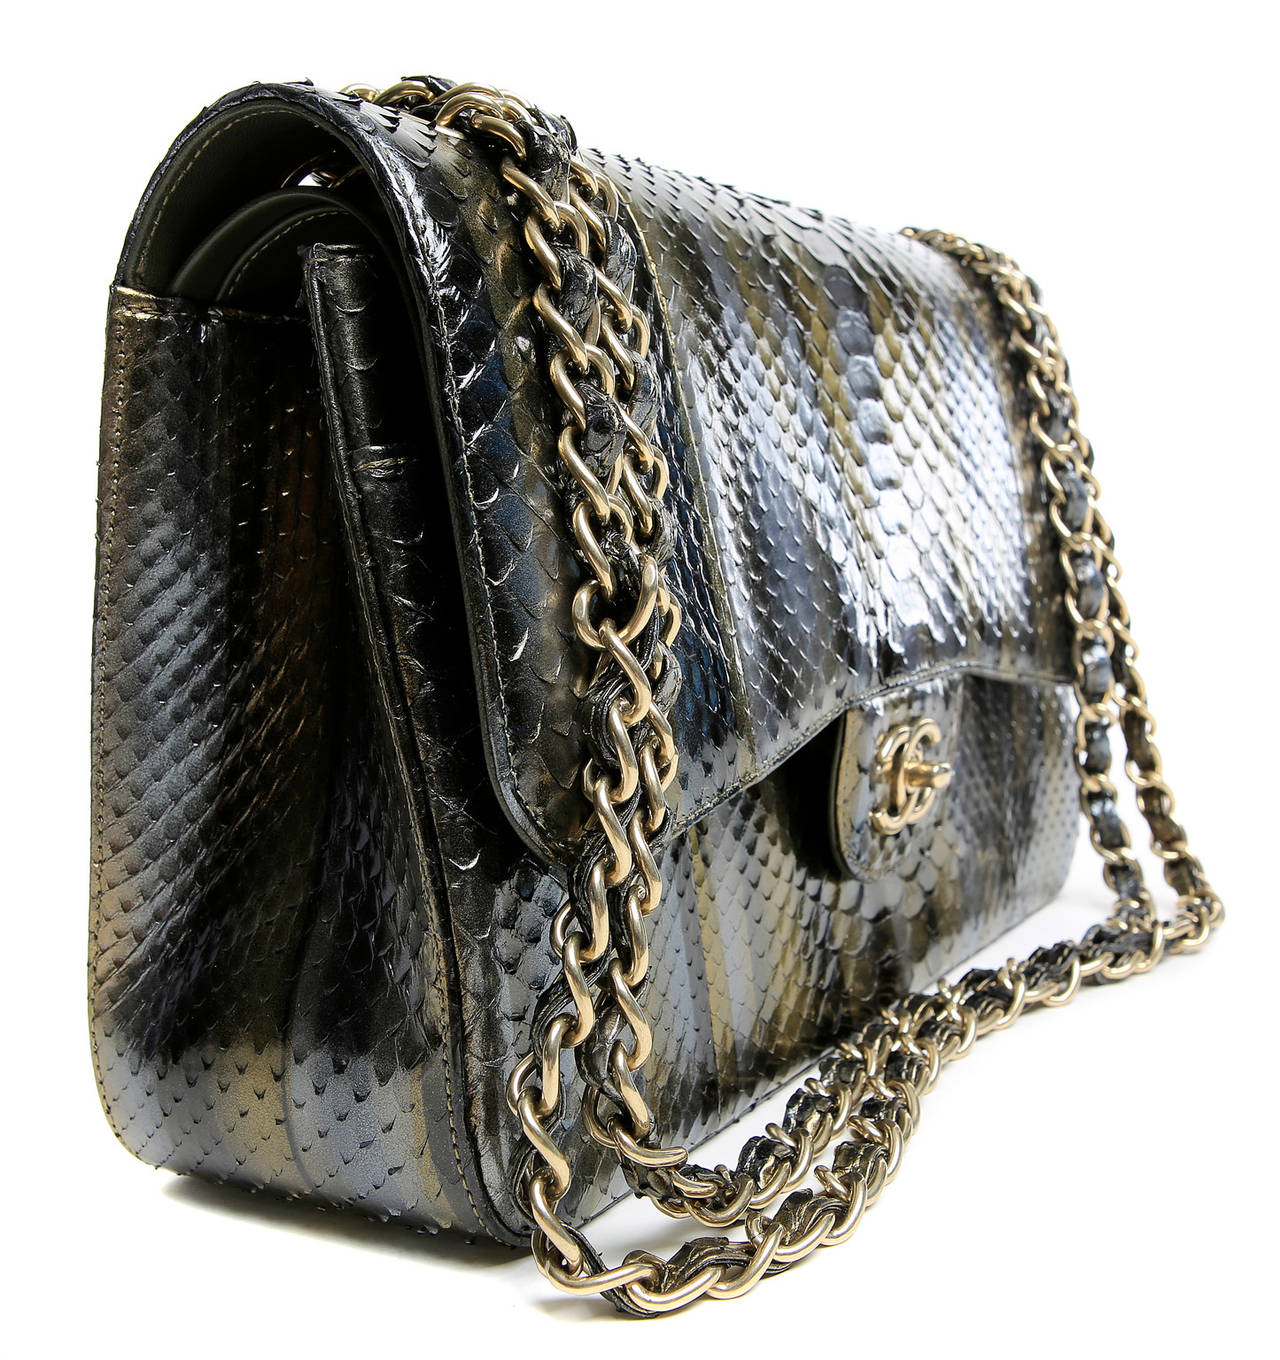 Black Chanel Jumbo Classic Metallic Python- Double Flap For Sale